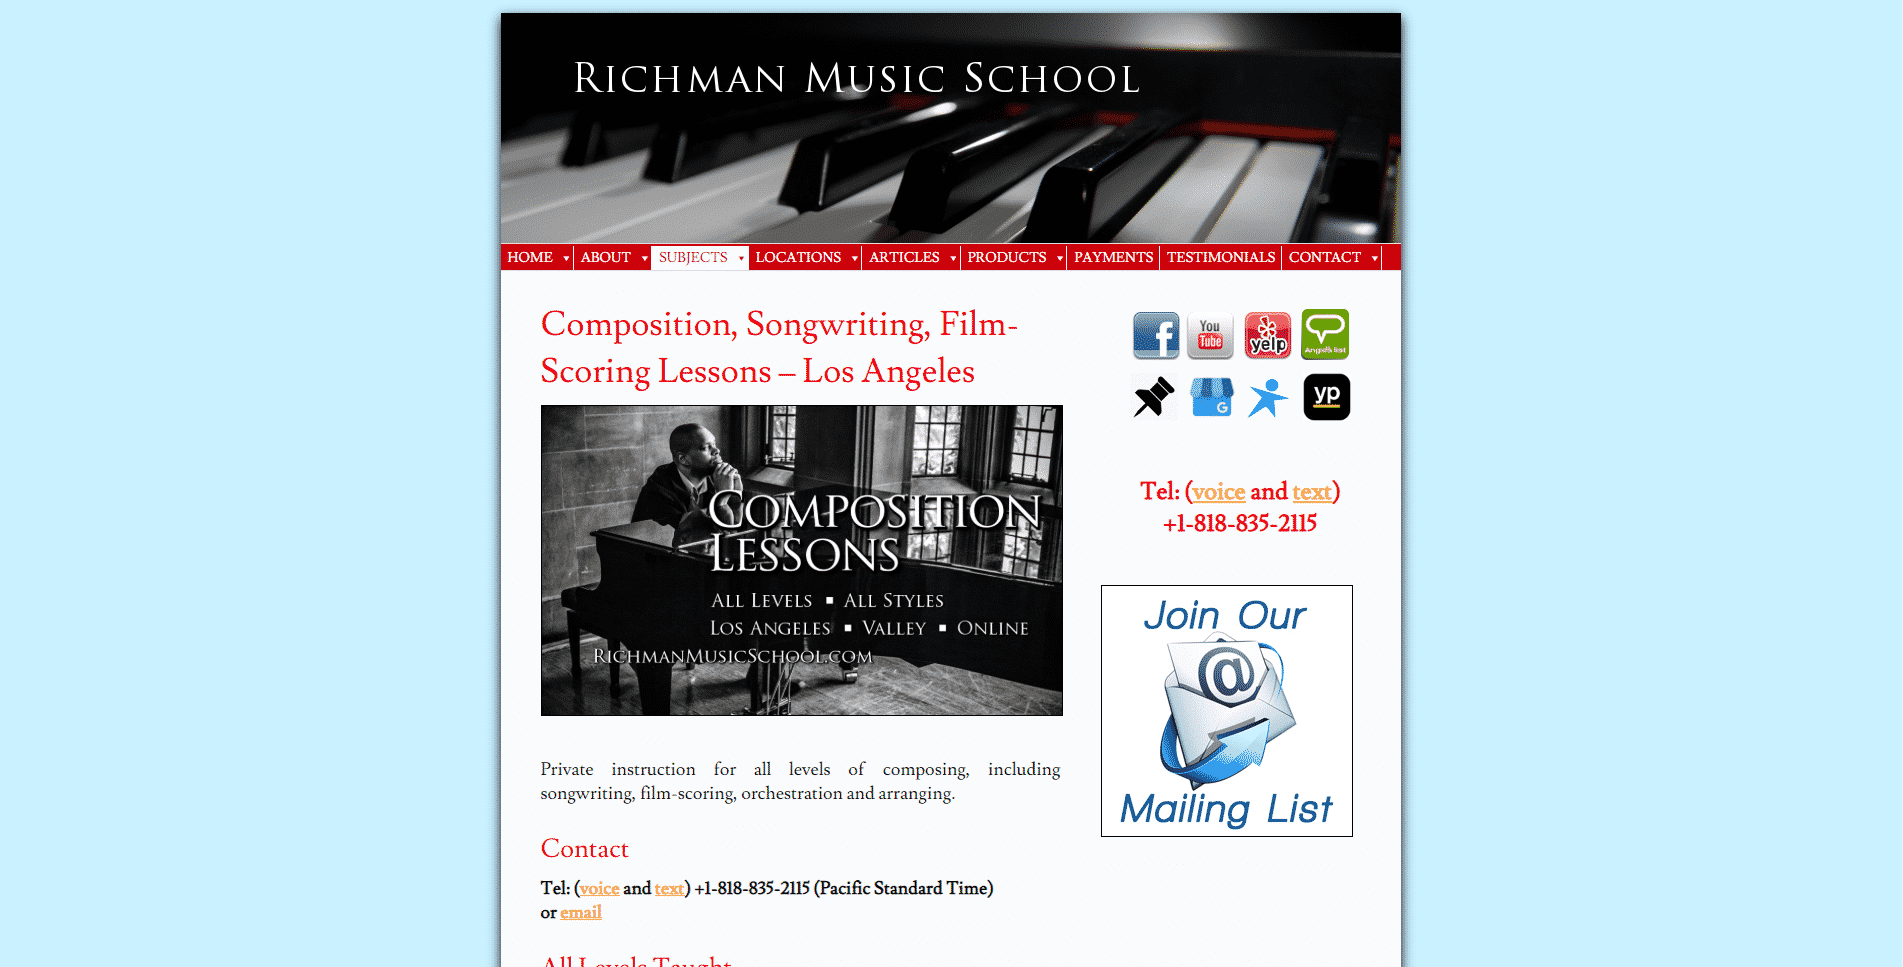 Richman Music School Learn Film Scoring Lessons Online